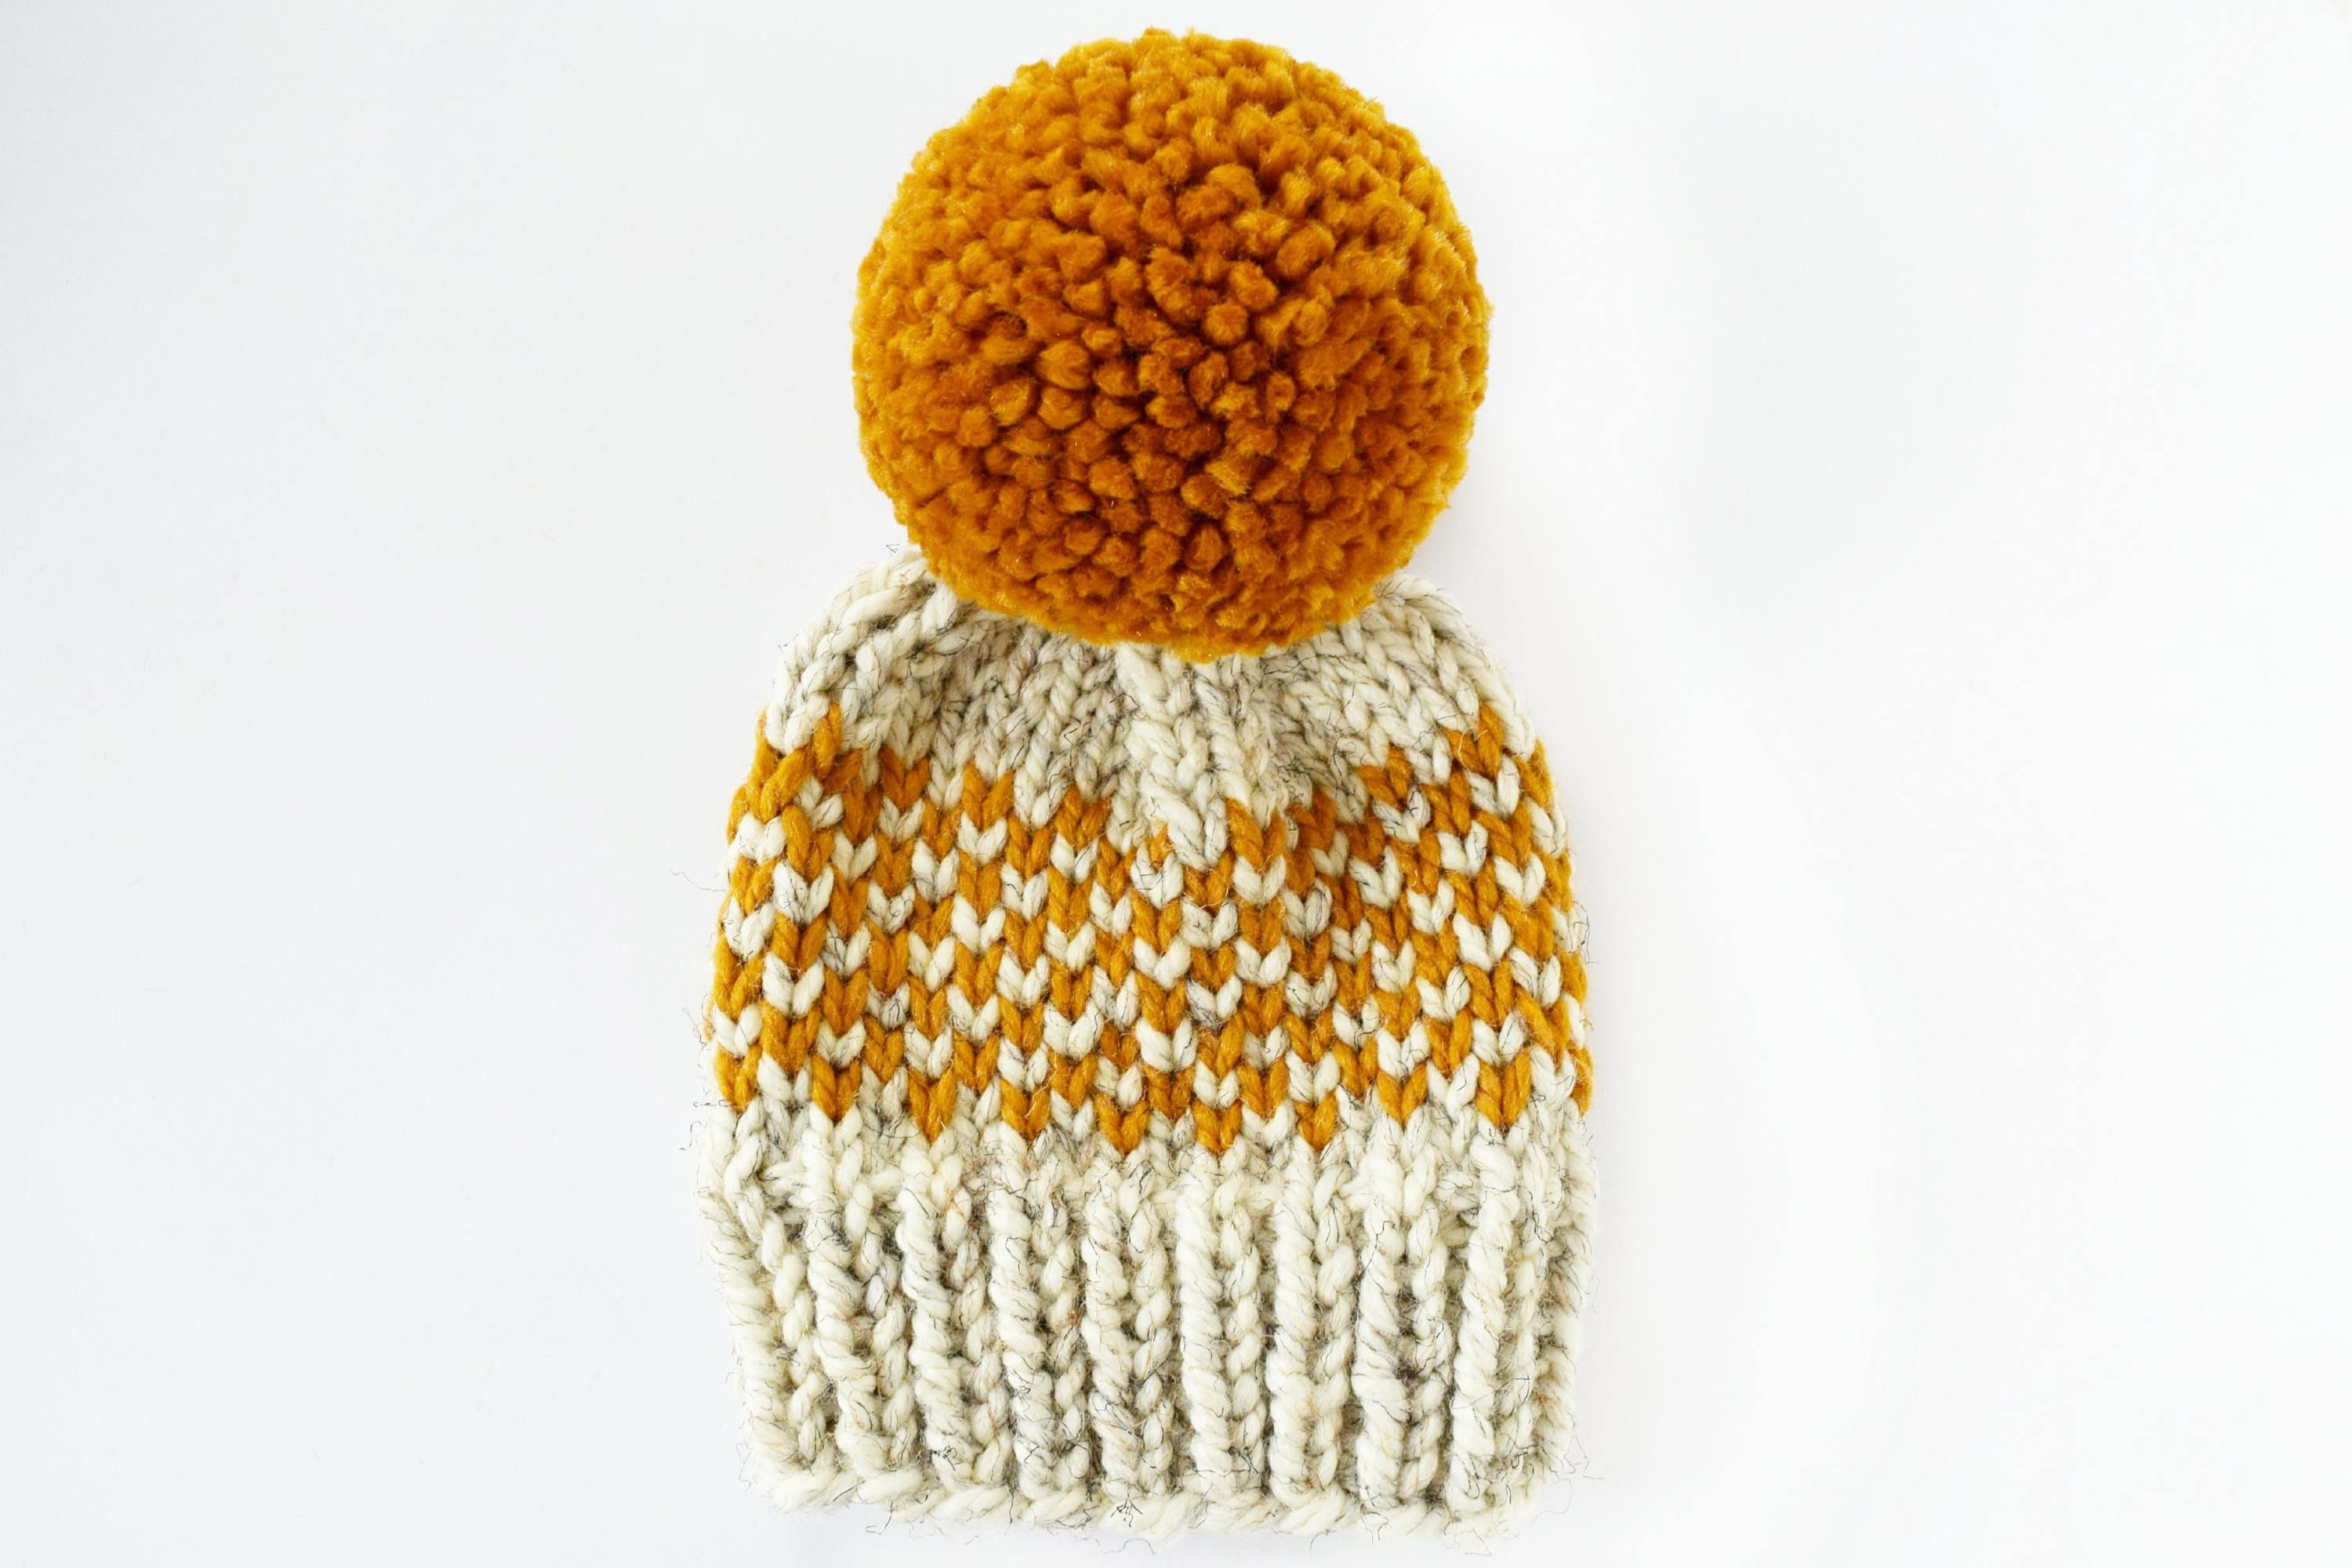 Pin de Alex DeJong en Knitting | Pinterest